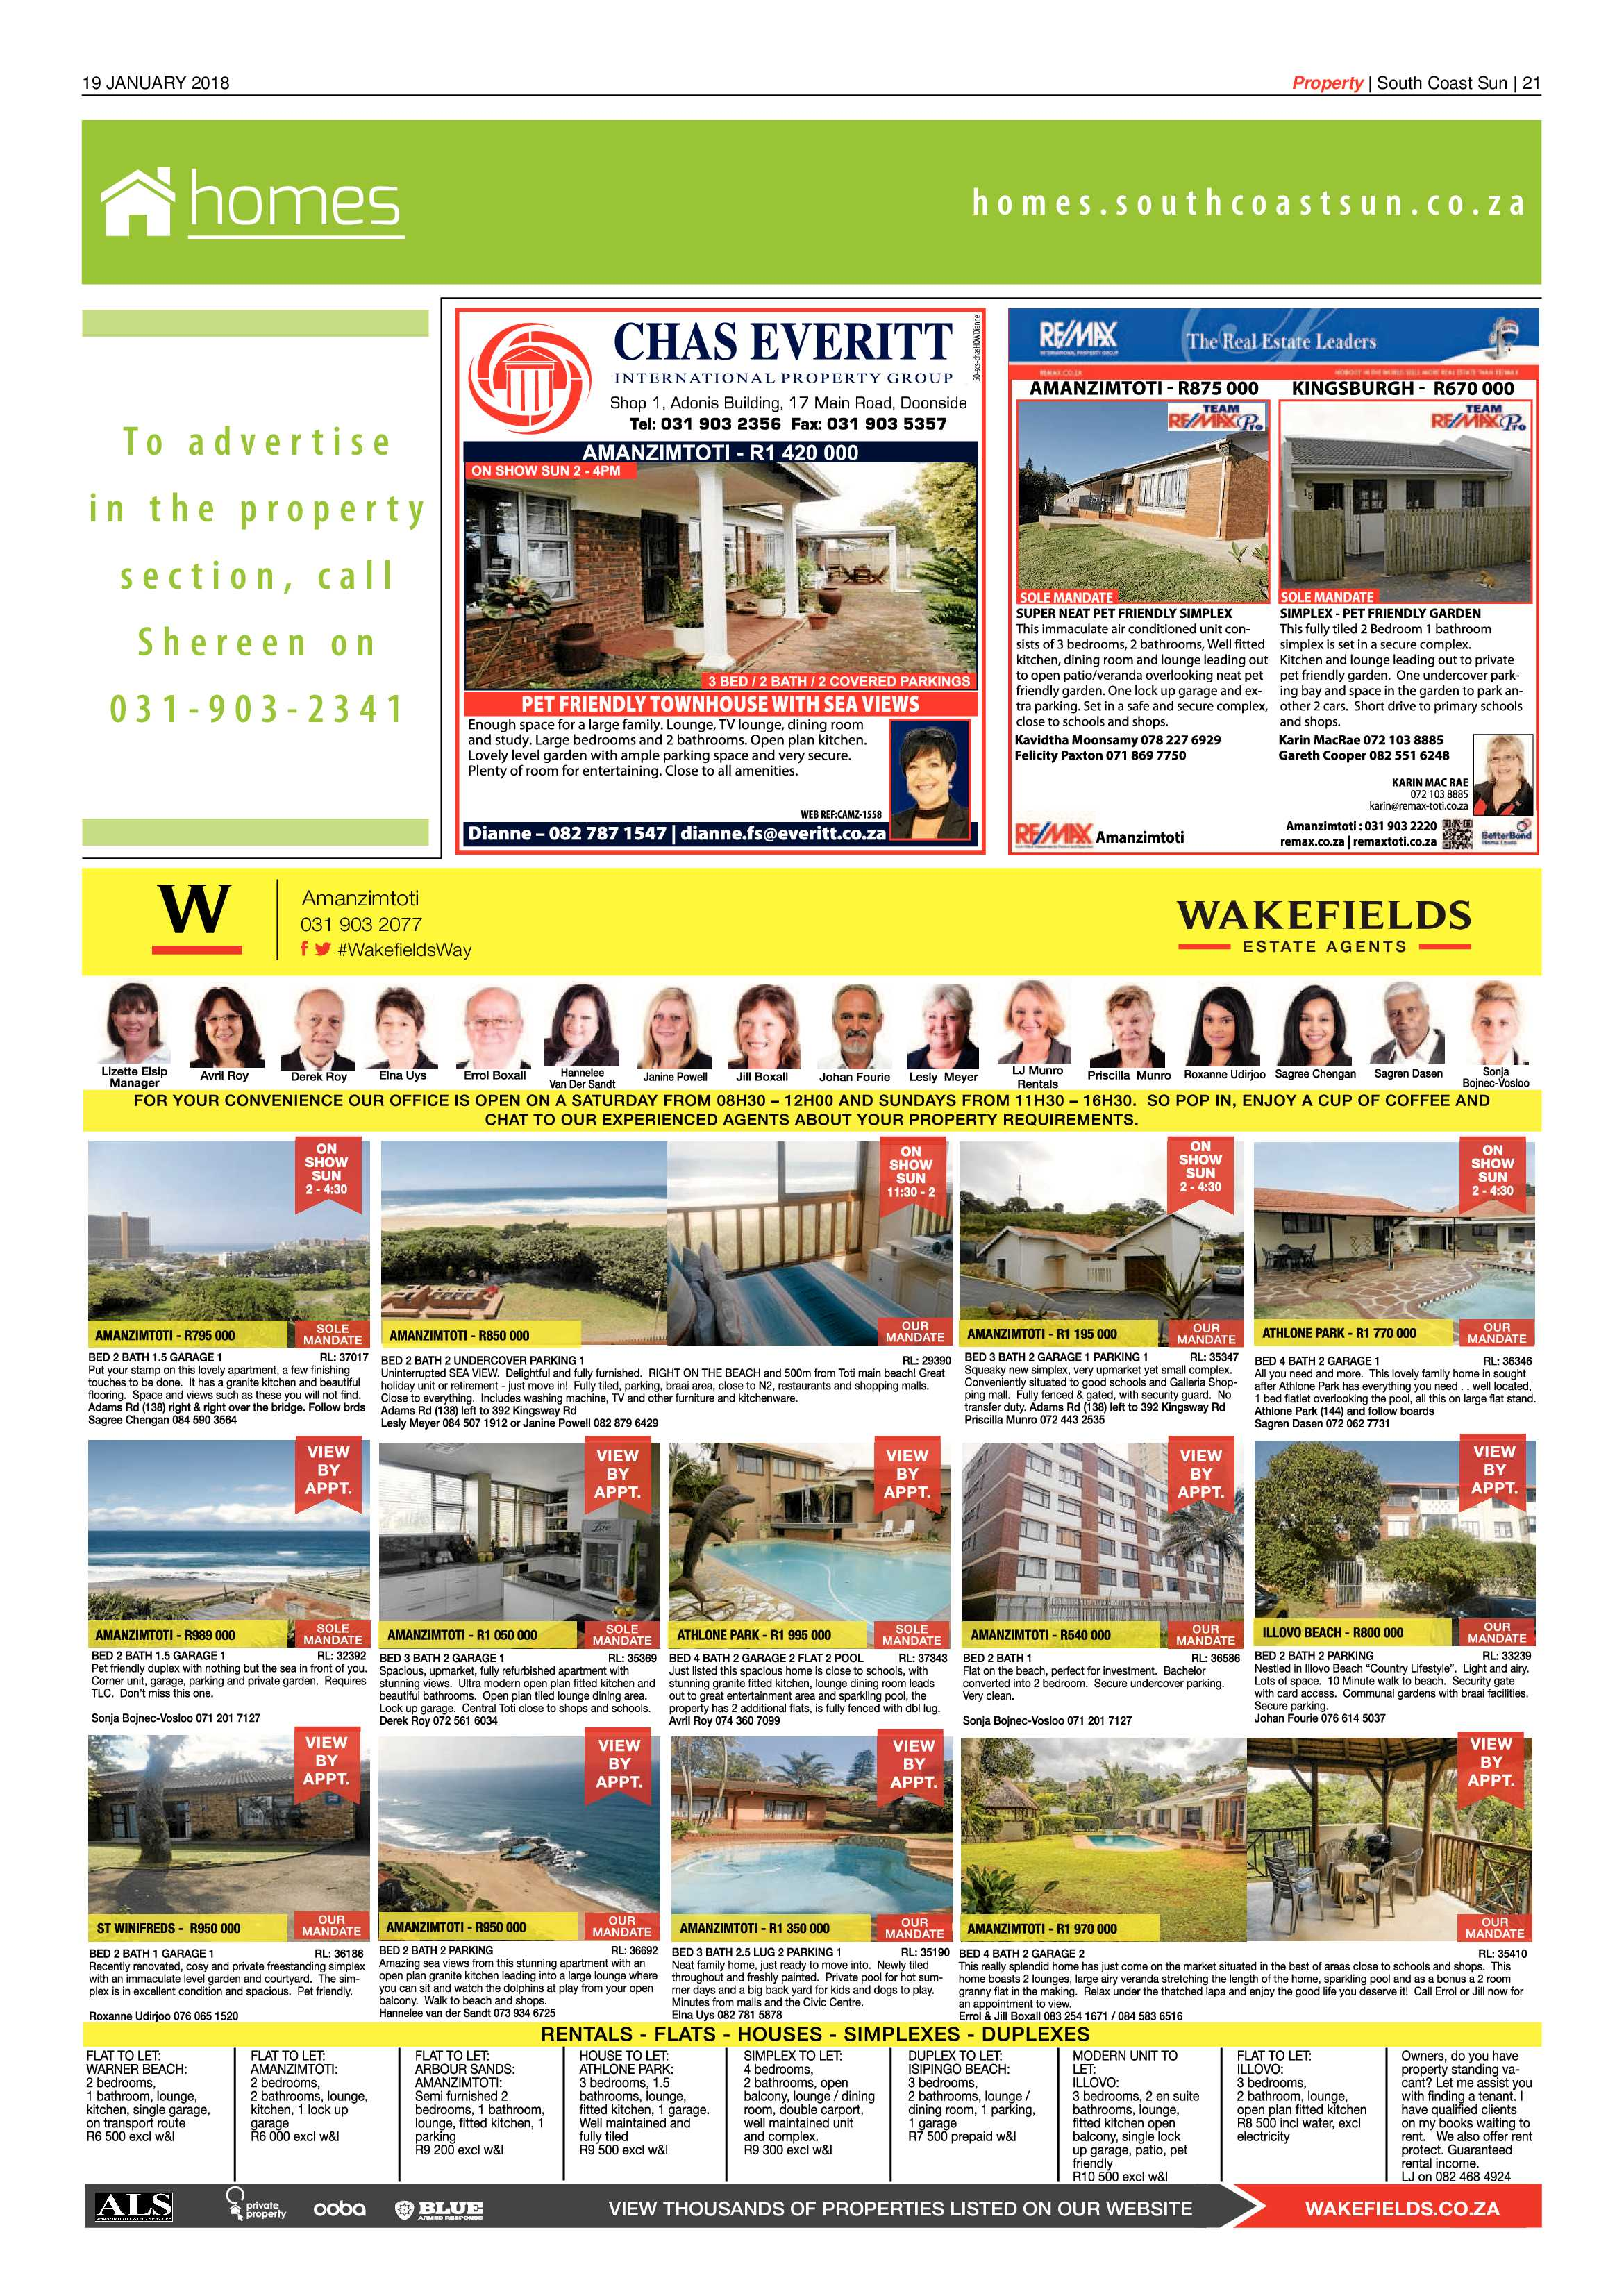 19-january-2018-epapers-page-21